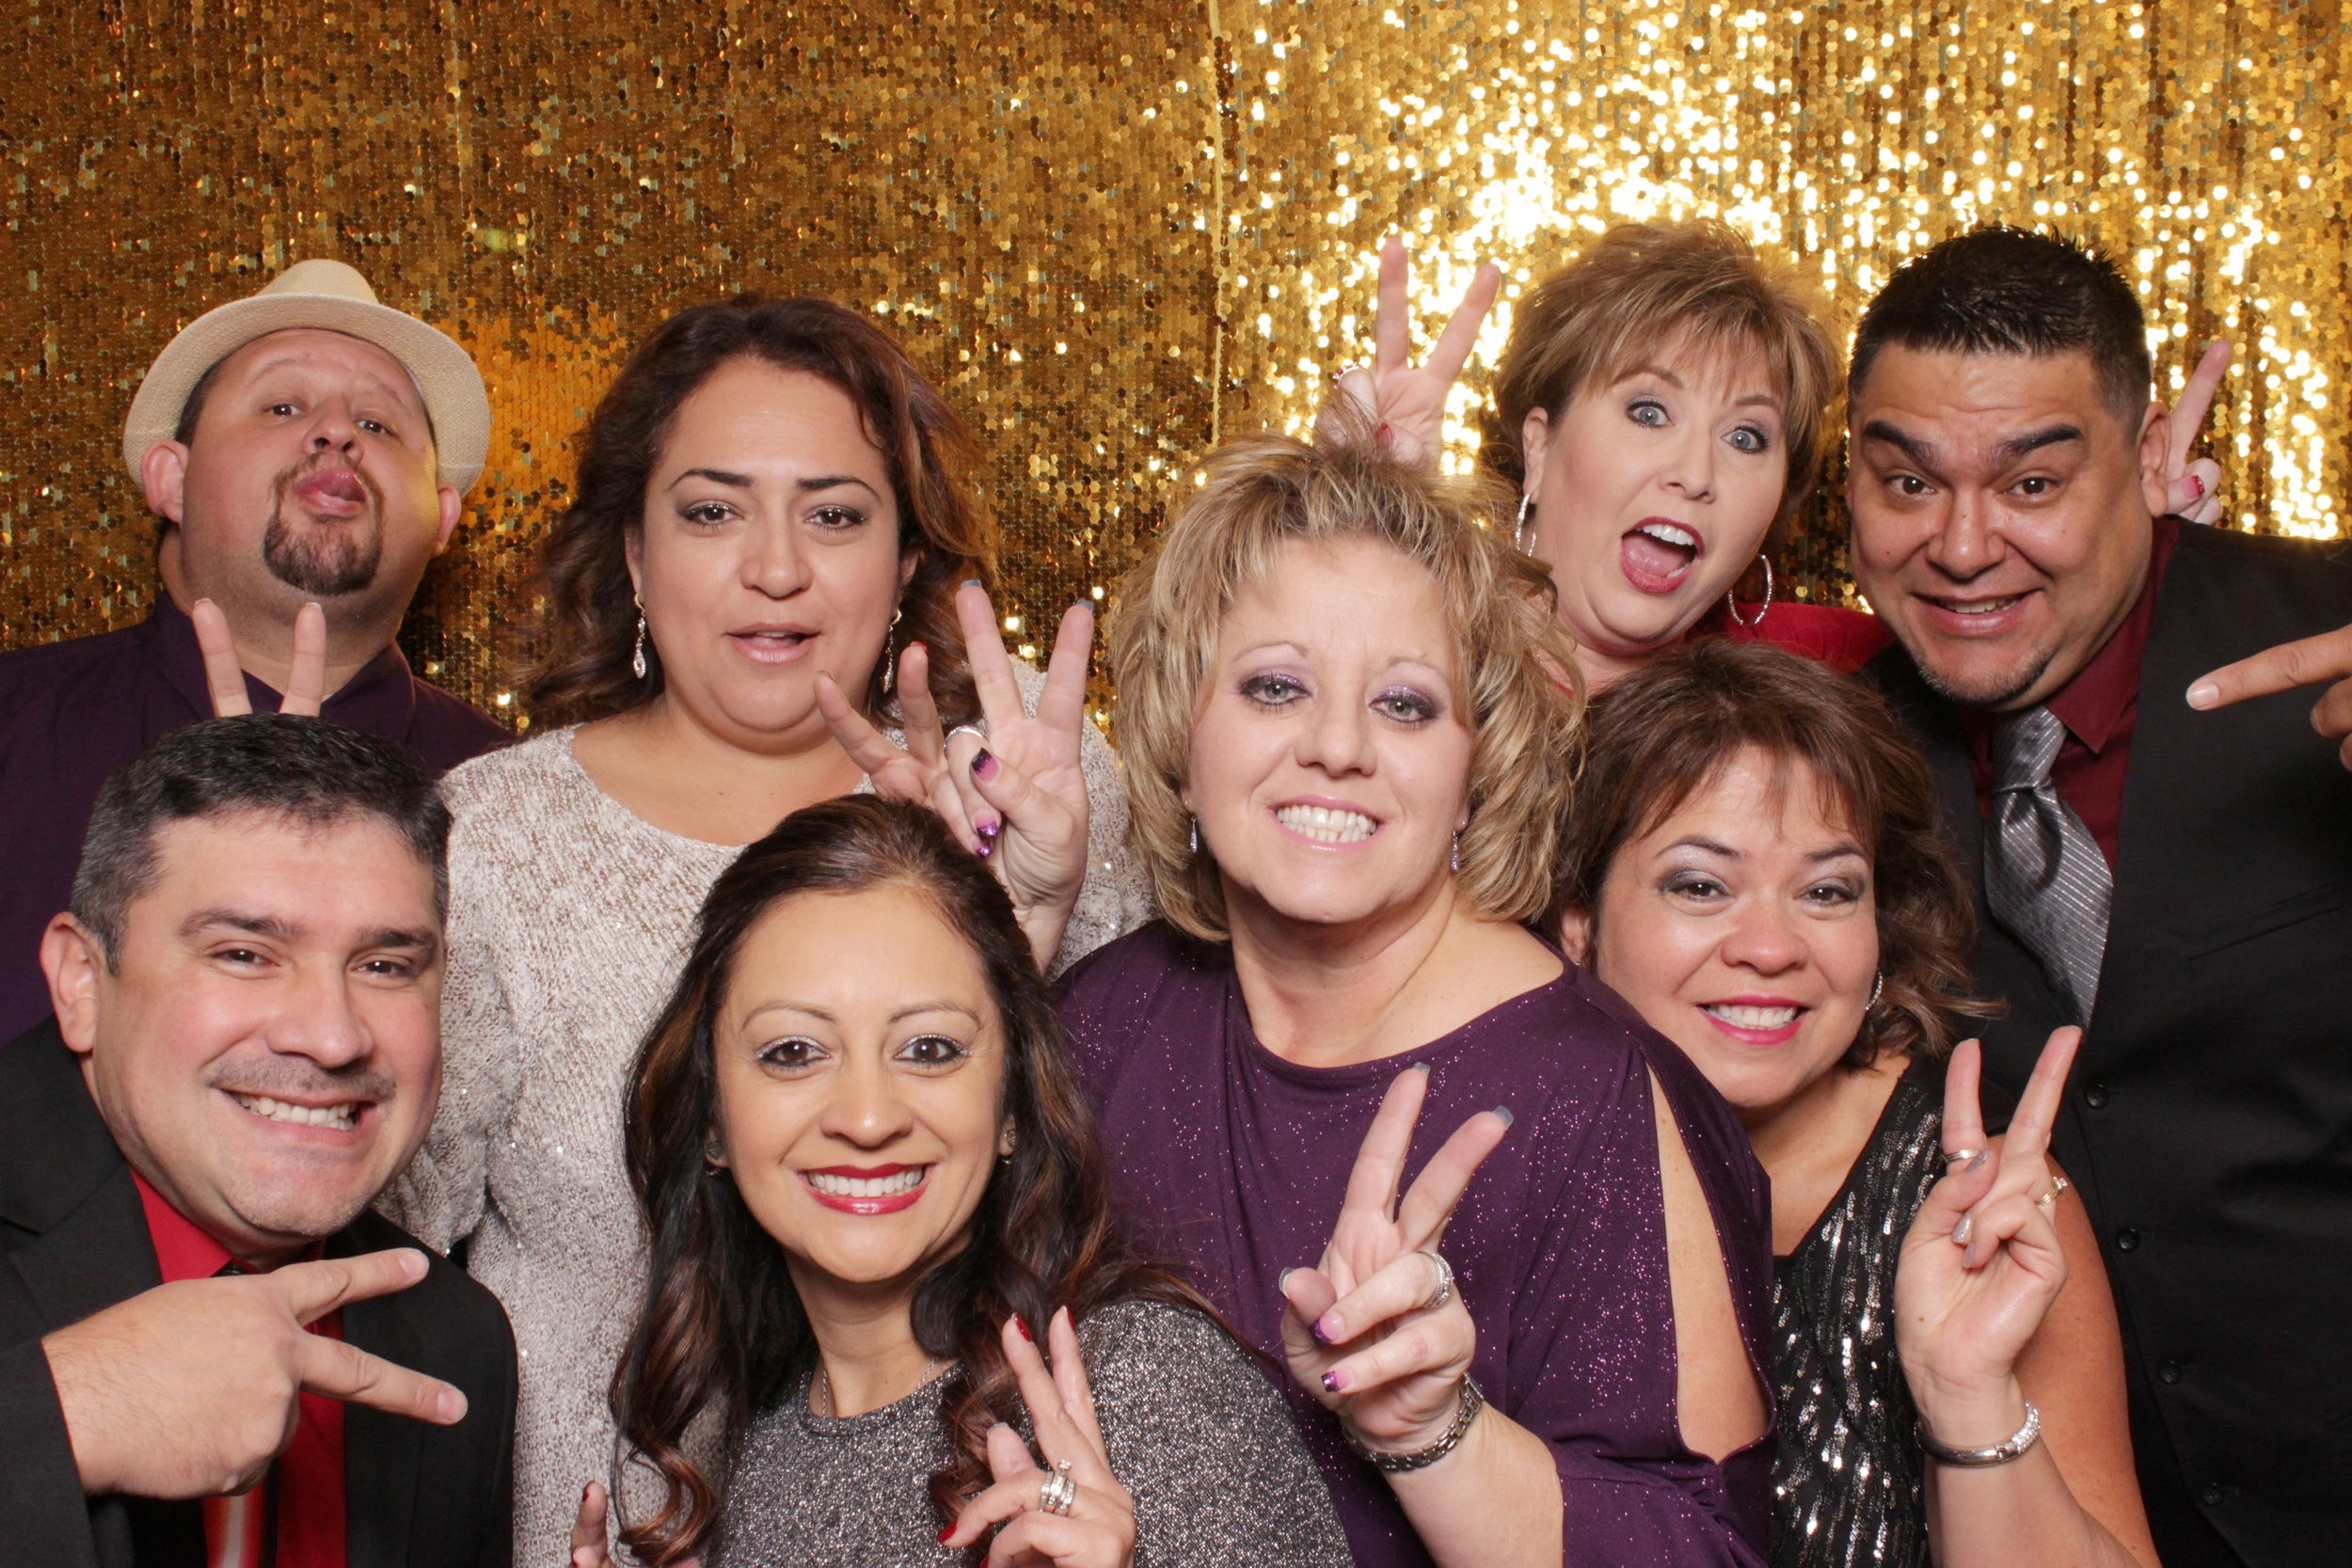 chico-photo-booth-holiday-rush-party